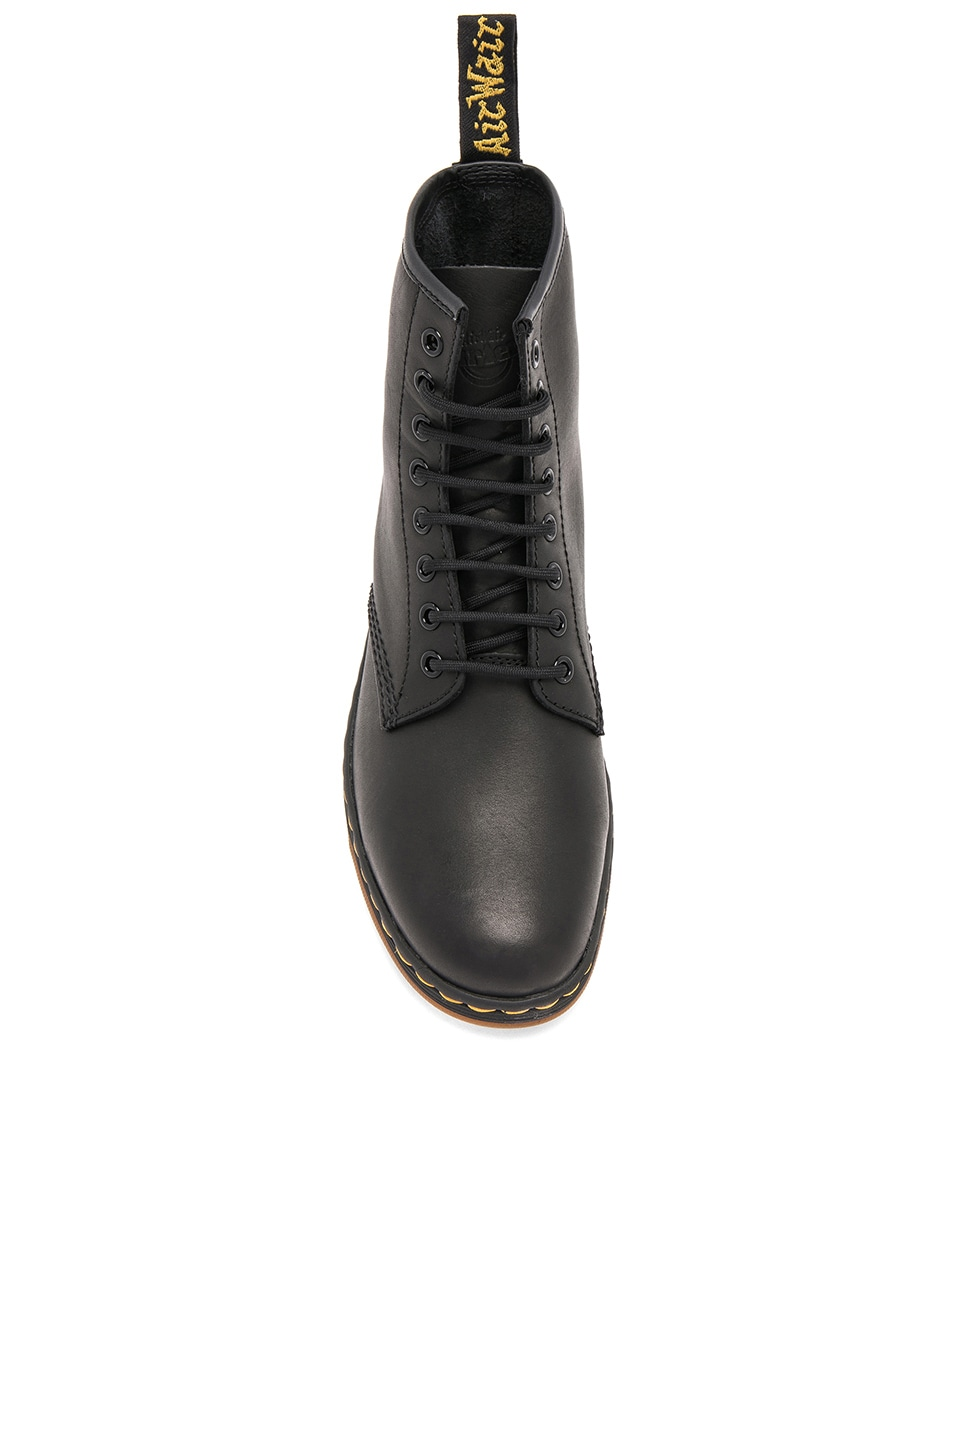 Image 4 of Dr. Martens Newton 8 Eye Leather Boots in Black